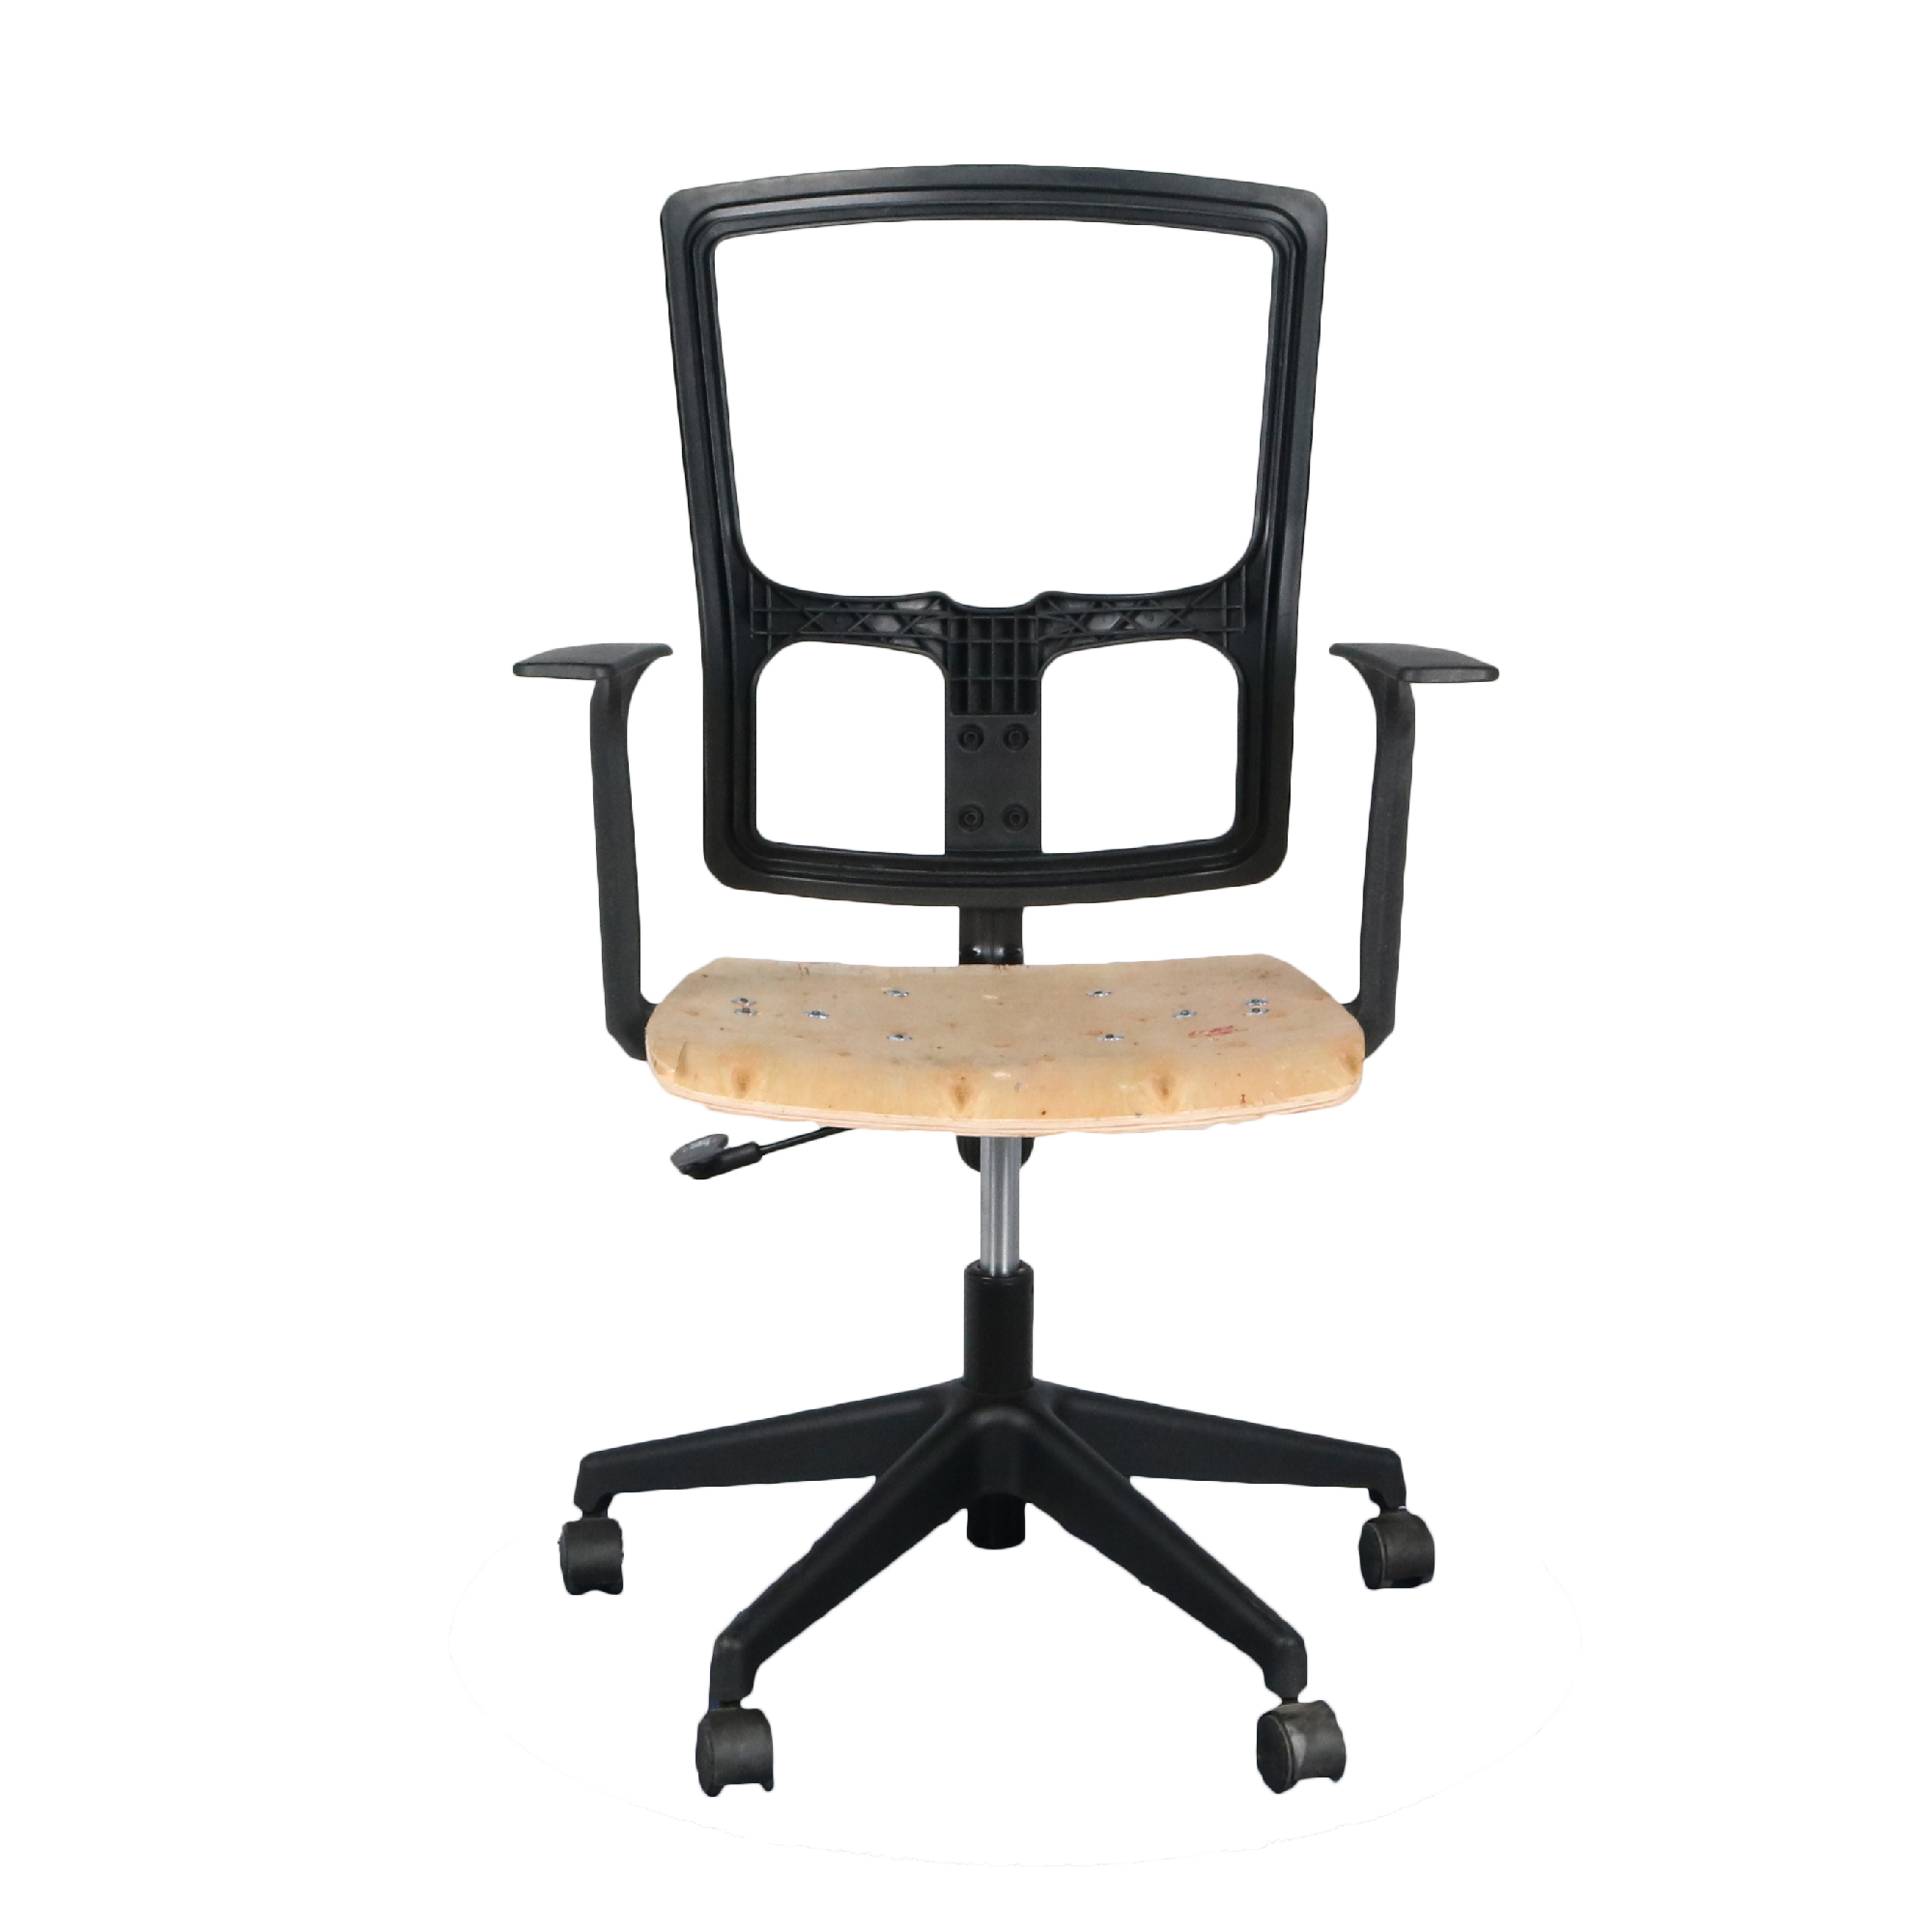 Hot sell chair accessories chair parts furniture office chair full set manufacturer